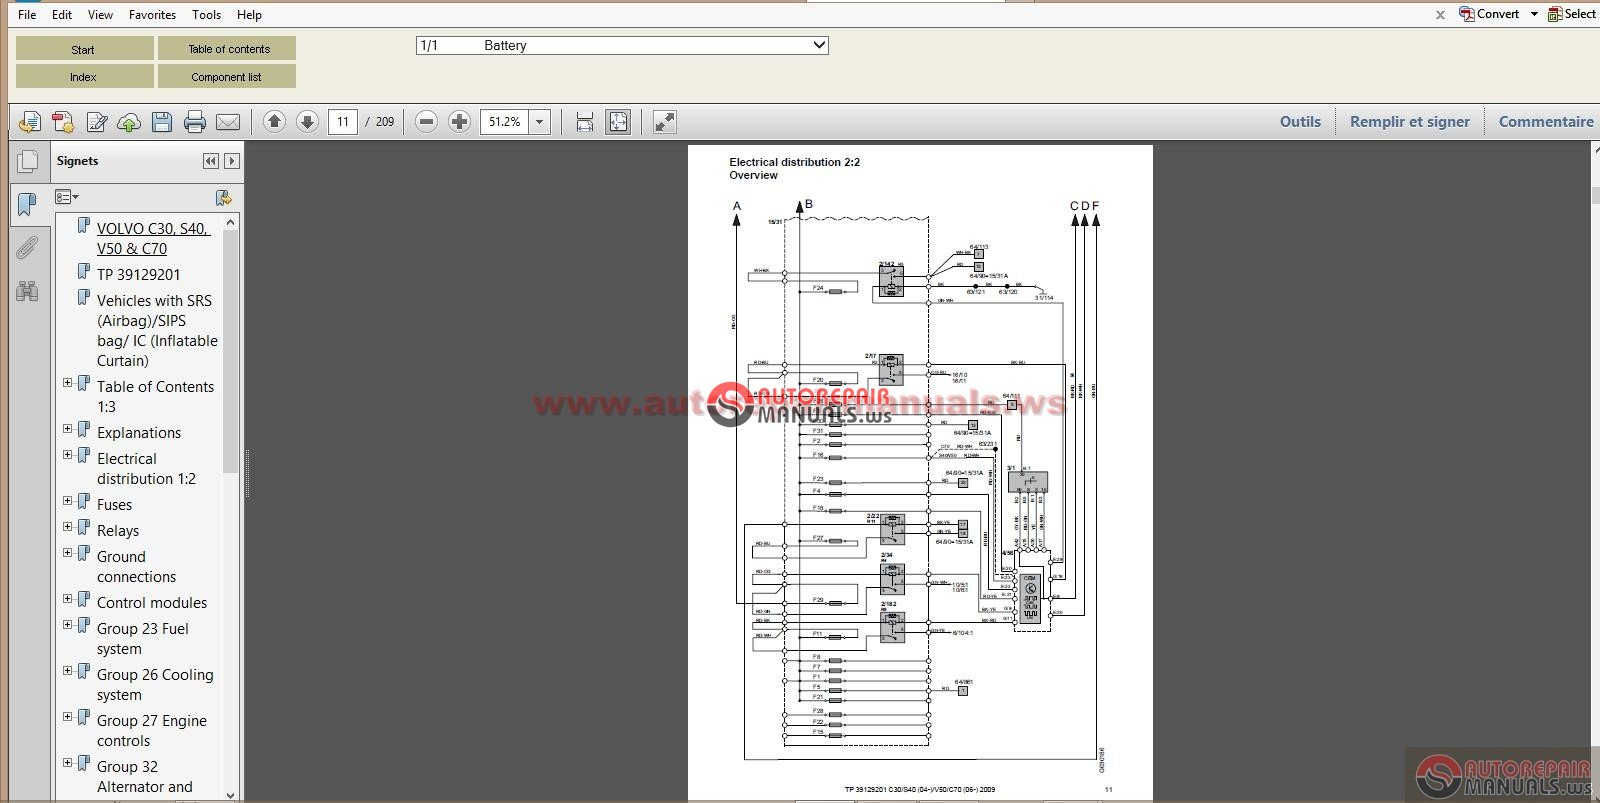 House Wiring Guide In Urdu Free Download Wiring Diagrams Pictures